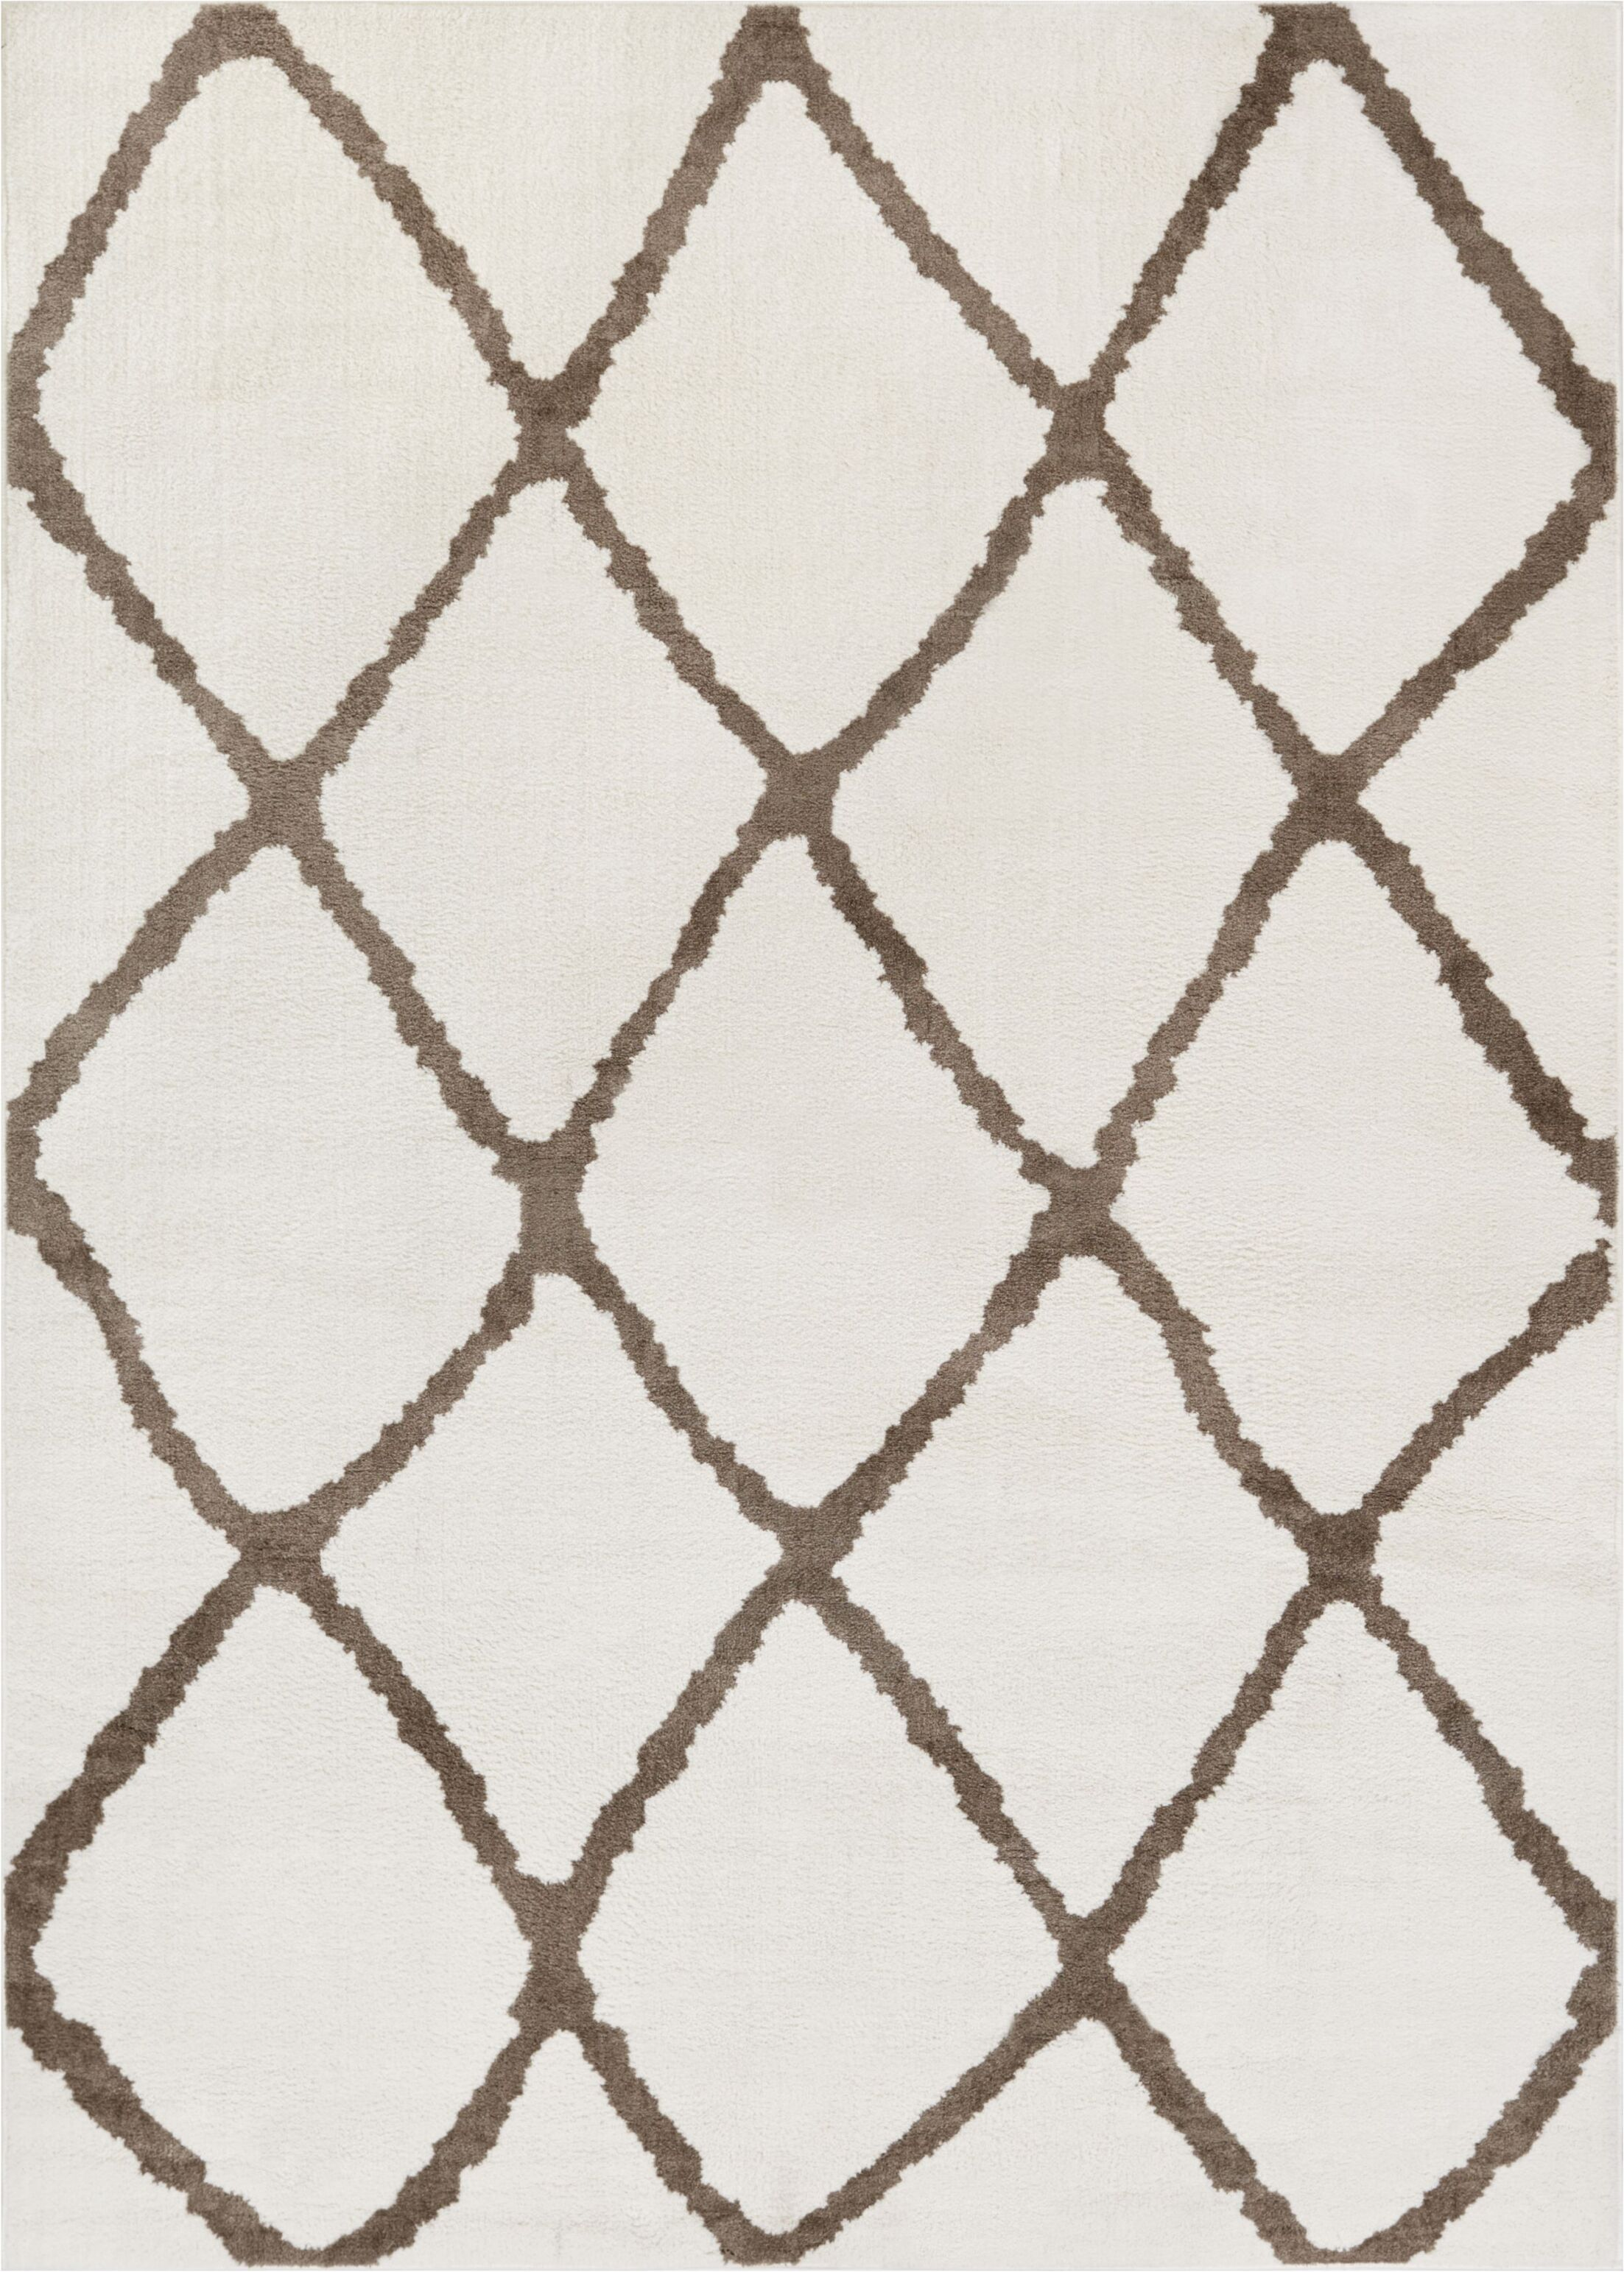 Patterson Modern Moroccan Trellis Beige/Brown Area Rug Rug Size: 7'10